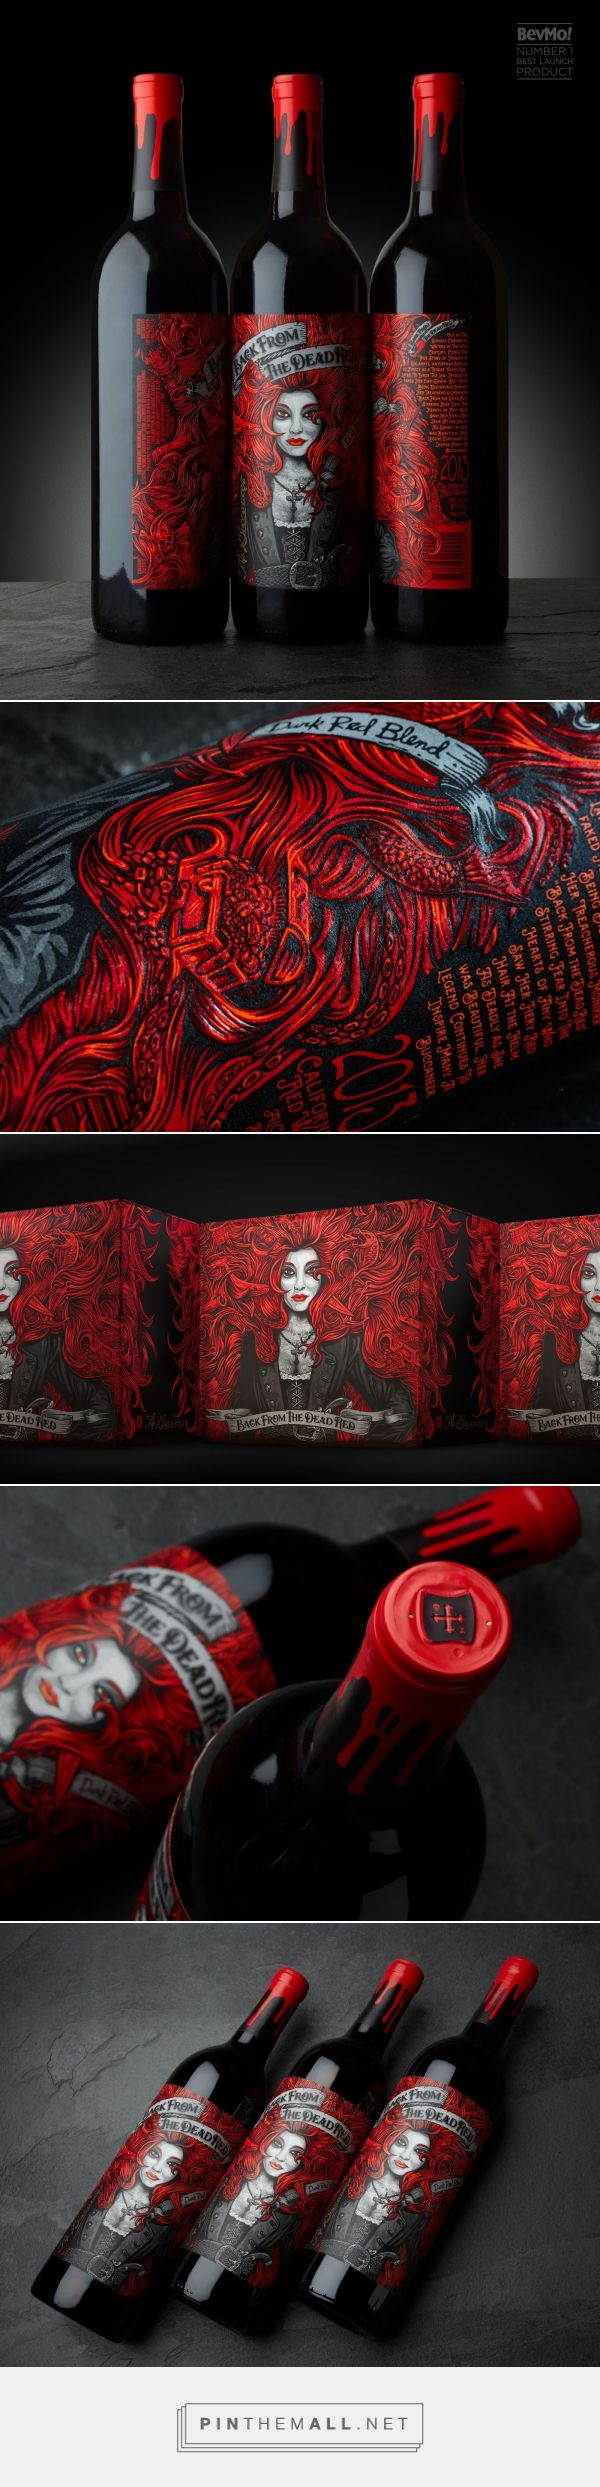 Back from the Dead Red wine packaging design by McLean Design - http://www.packagingoftheworld.com/2017/06/back-from-dead-red.html